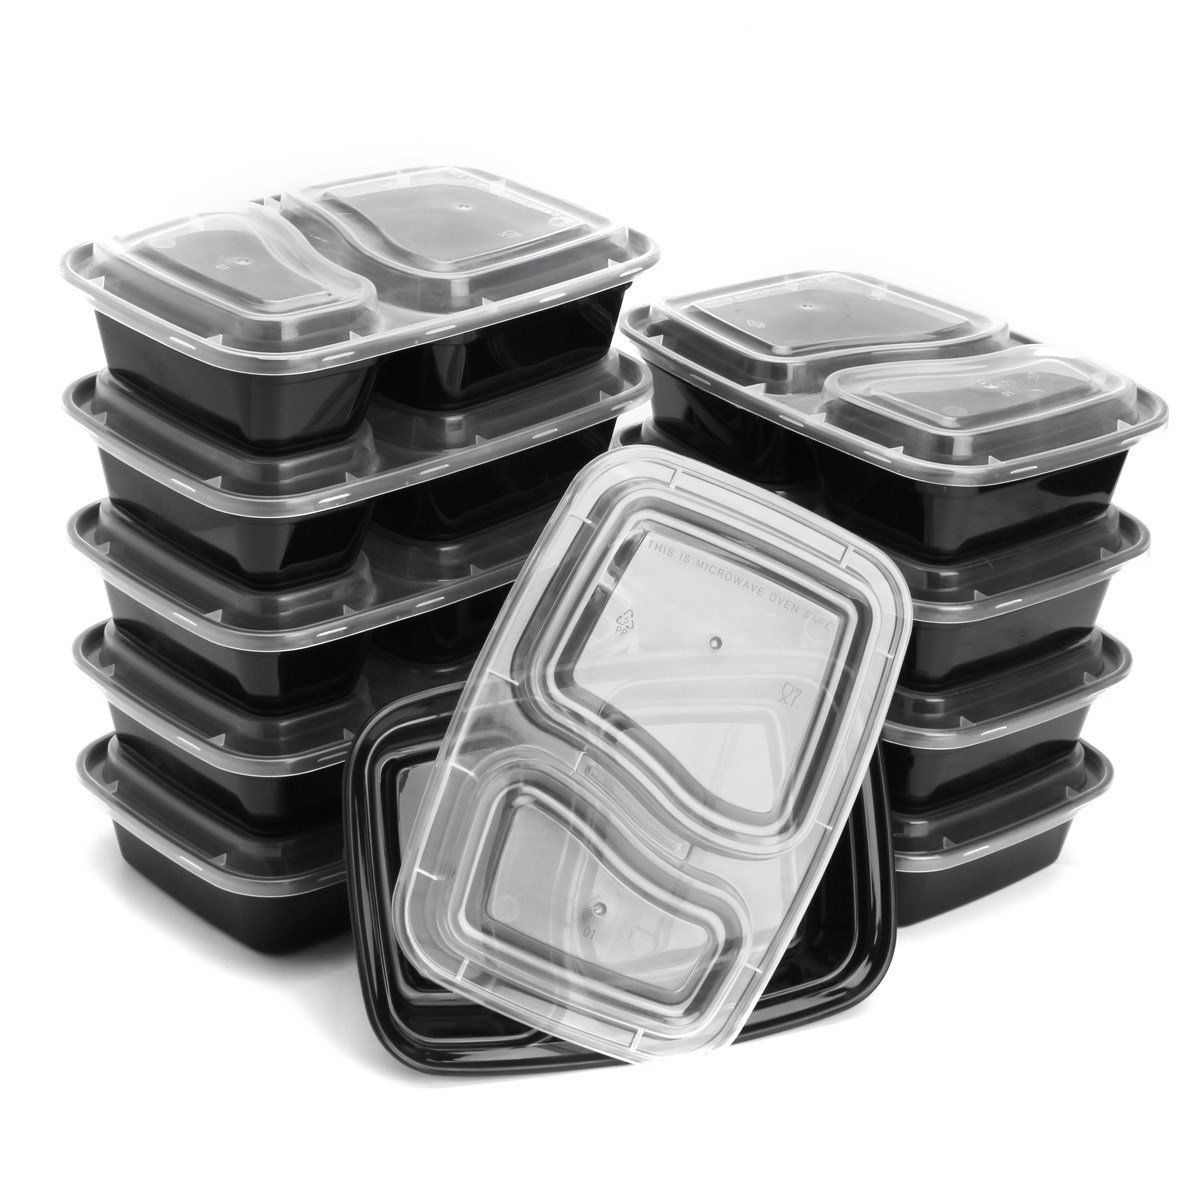 Xiaolanwelc@ 10Pcs/lot Food Storage Container 950ml 2 Compartment Meal Prep Box Bin Durable BPA Free Plastic Microwave Dishwasher Safe